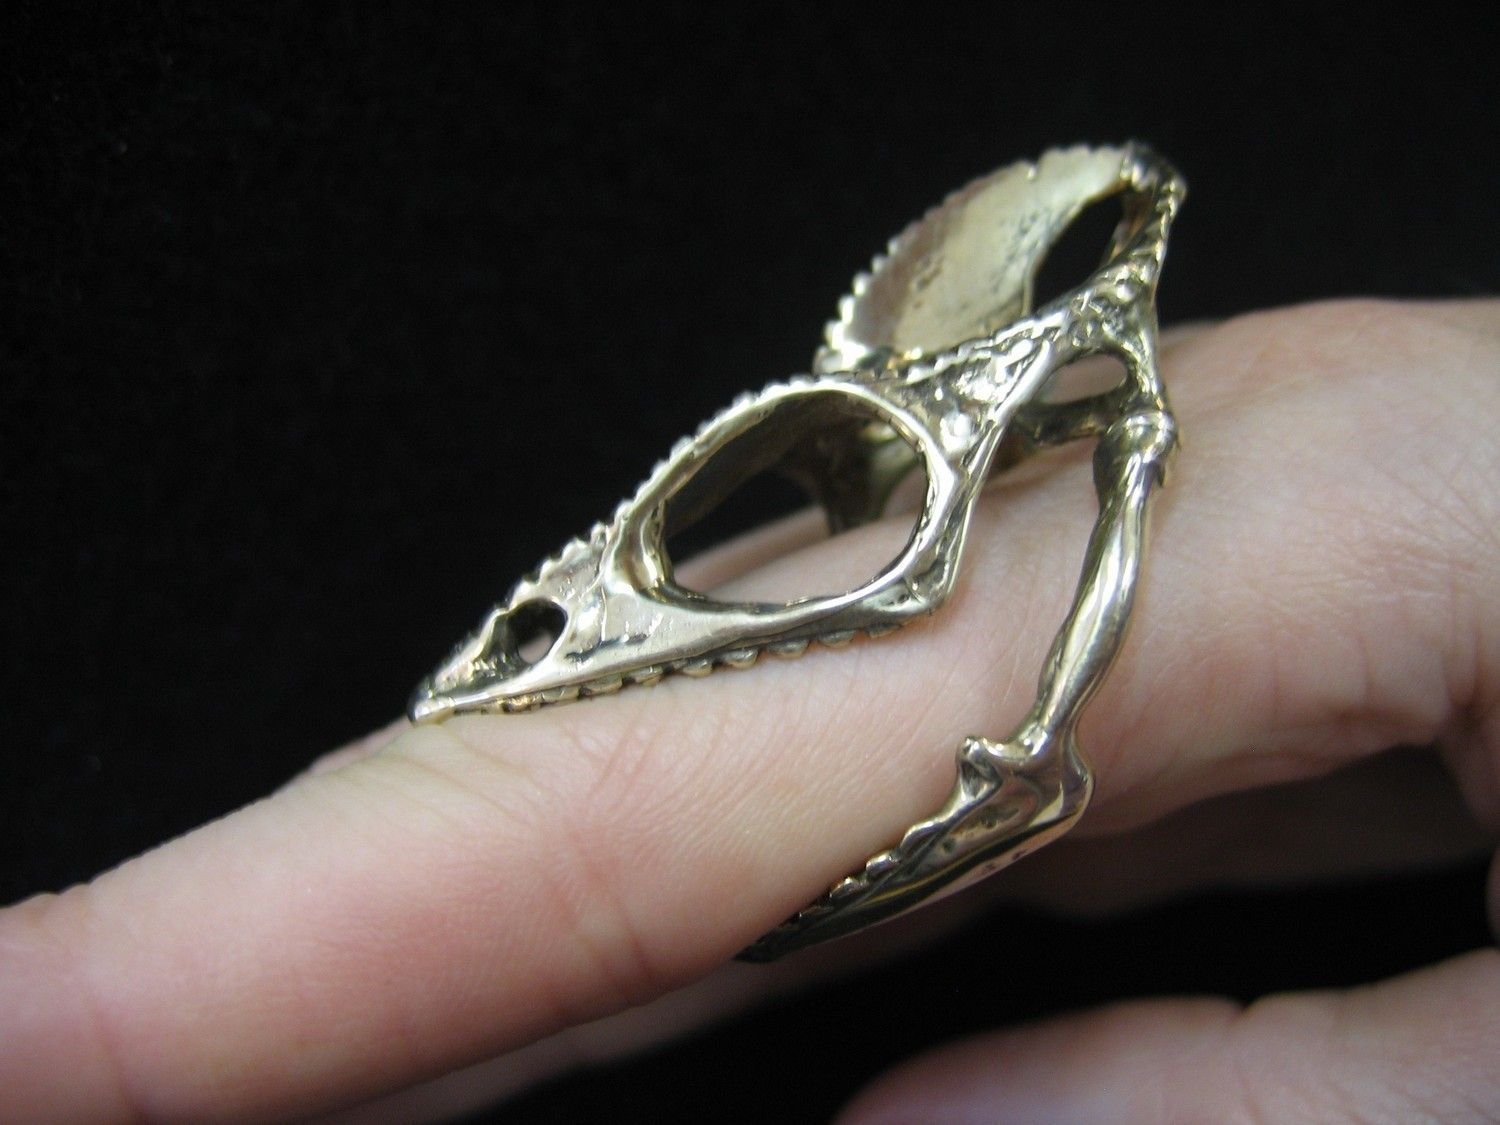 rings ideas on ring cute of adjustable concept and elegant awesome steampunk in unique pictures luulla gold lizard wedding